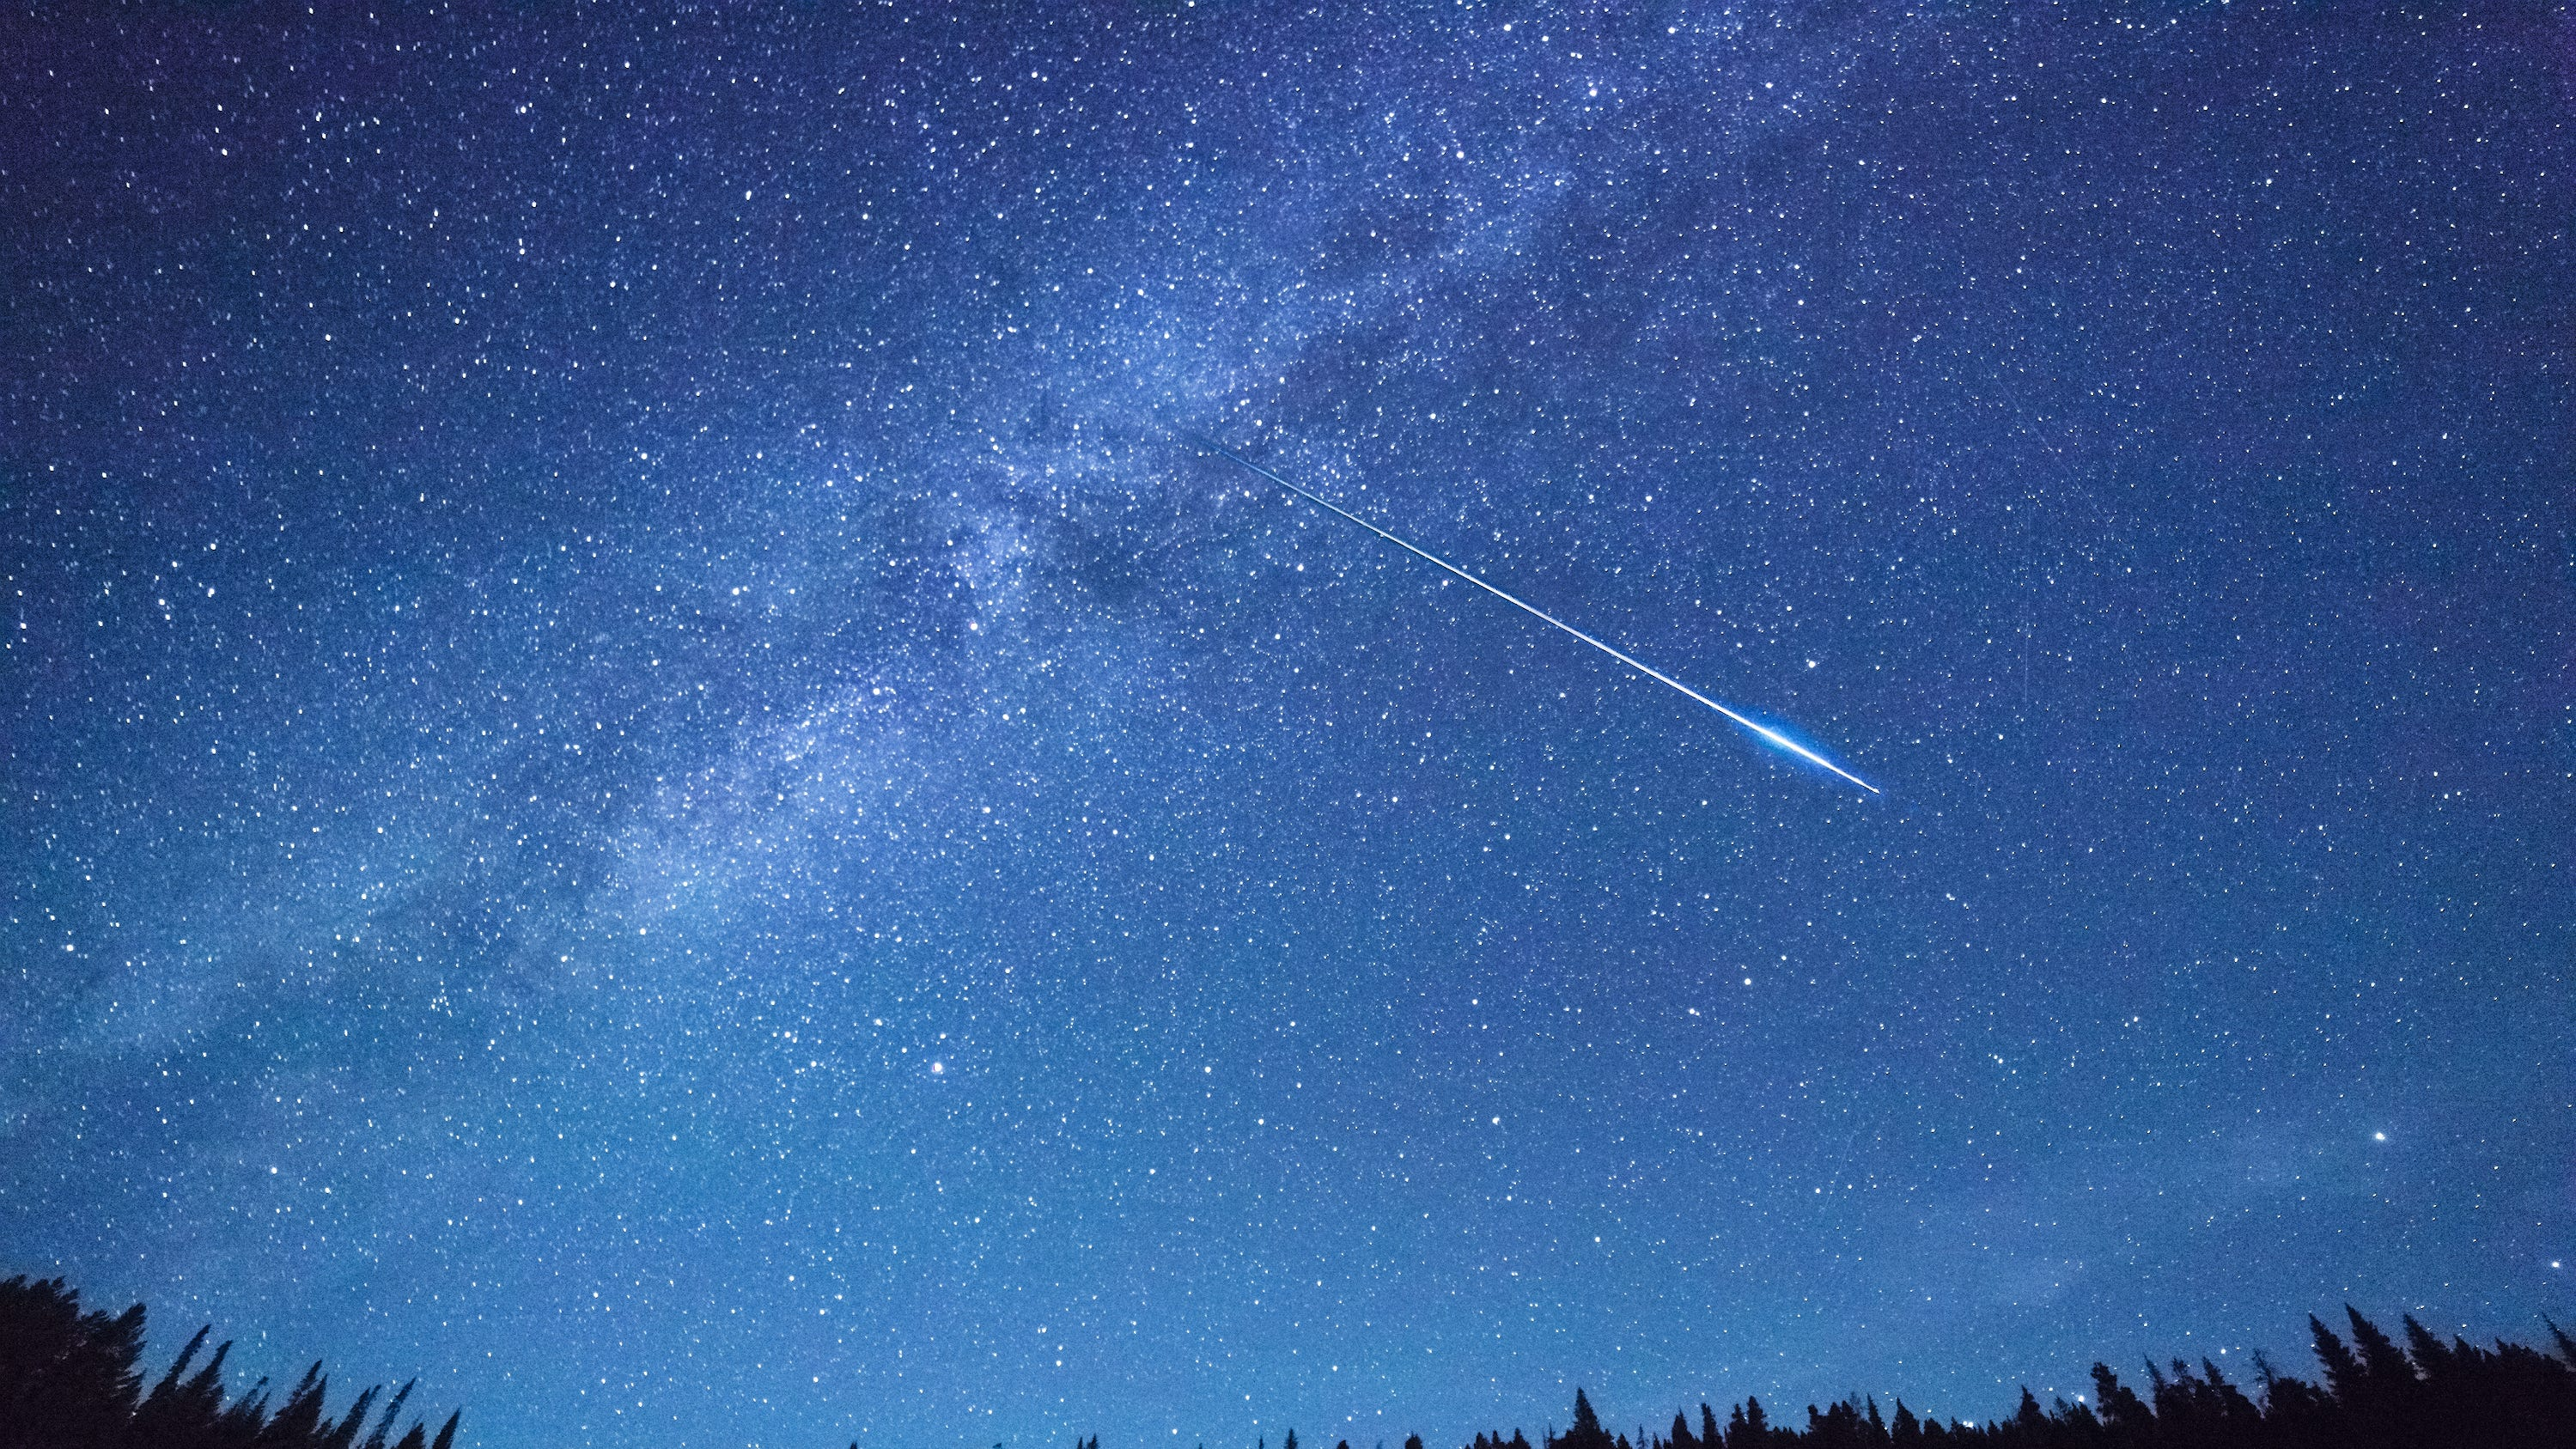 Keep your eyes to the sky: Twin meteor showers could produce fireballs this week